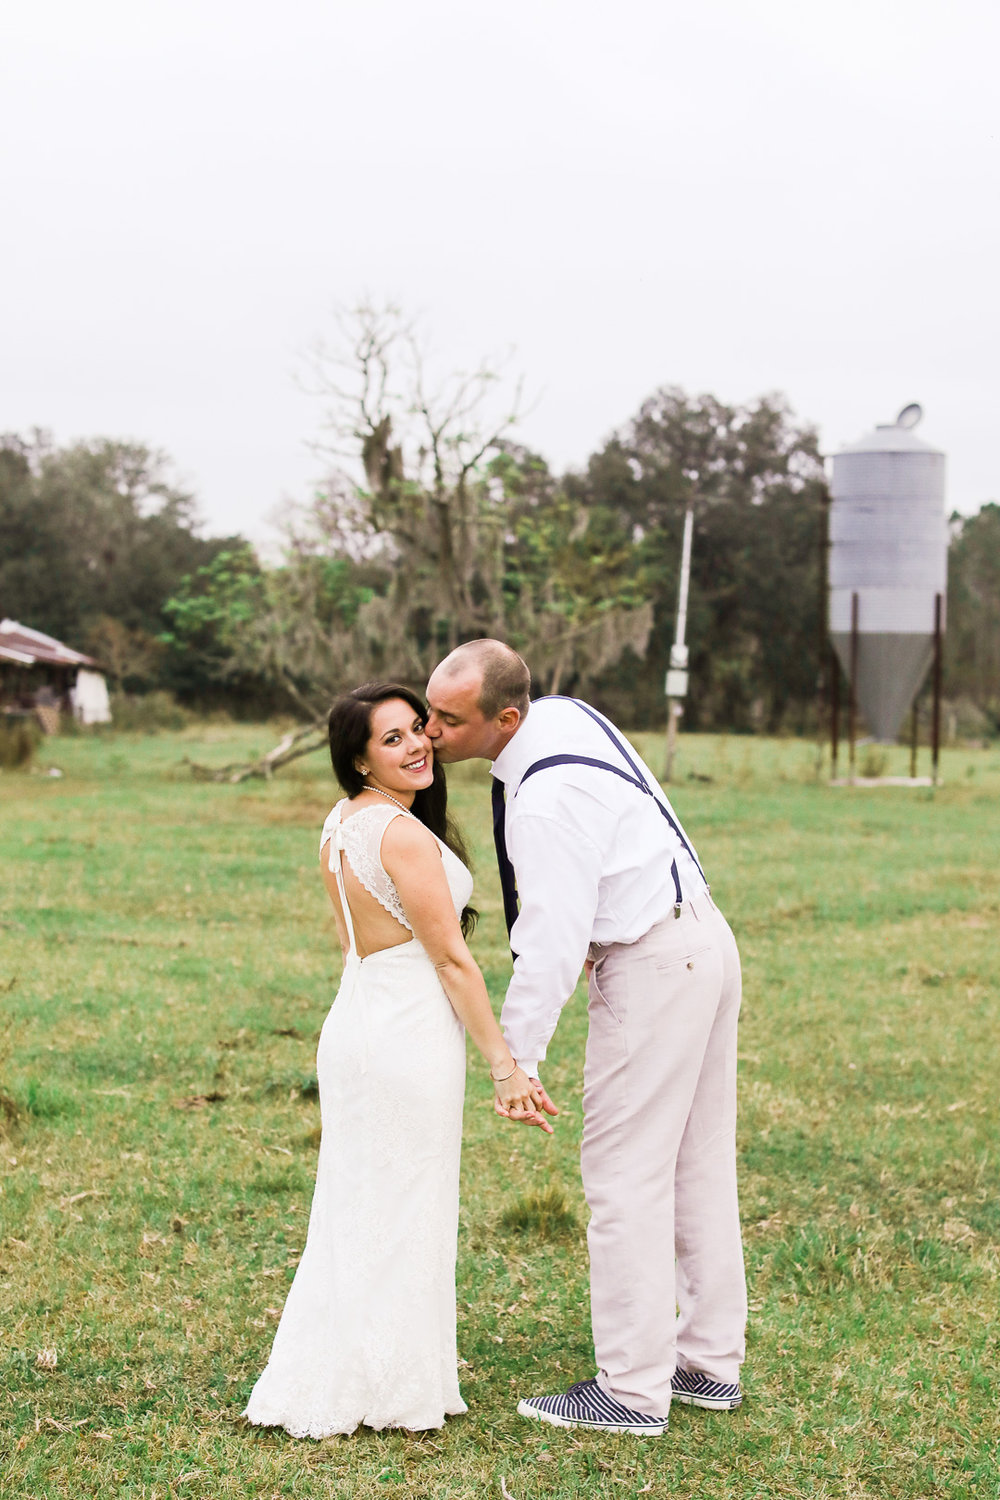 williams_family_newlywed-185.jpg